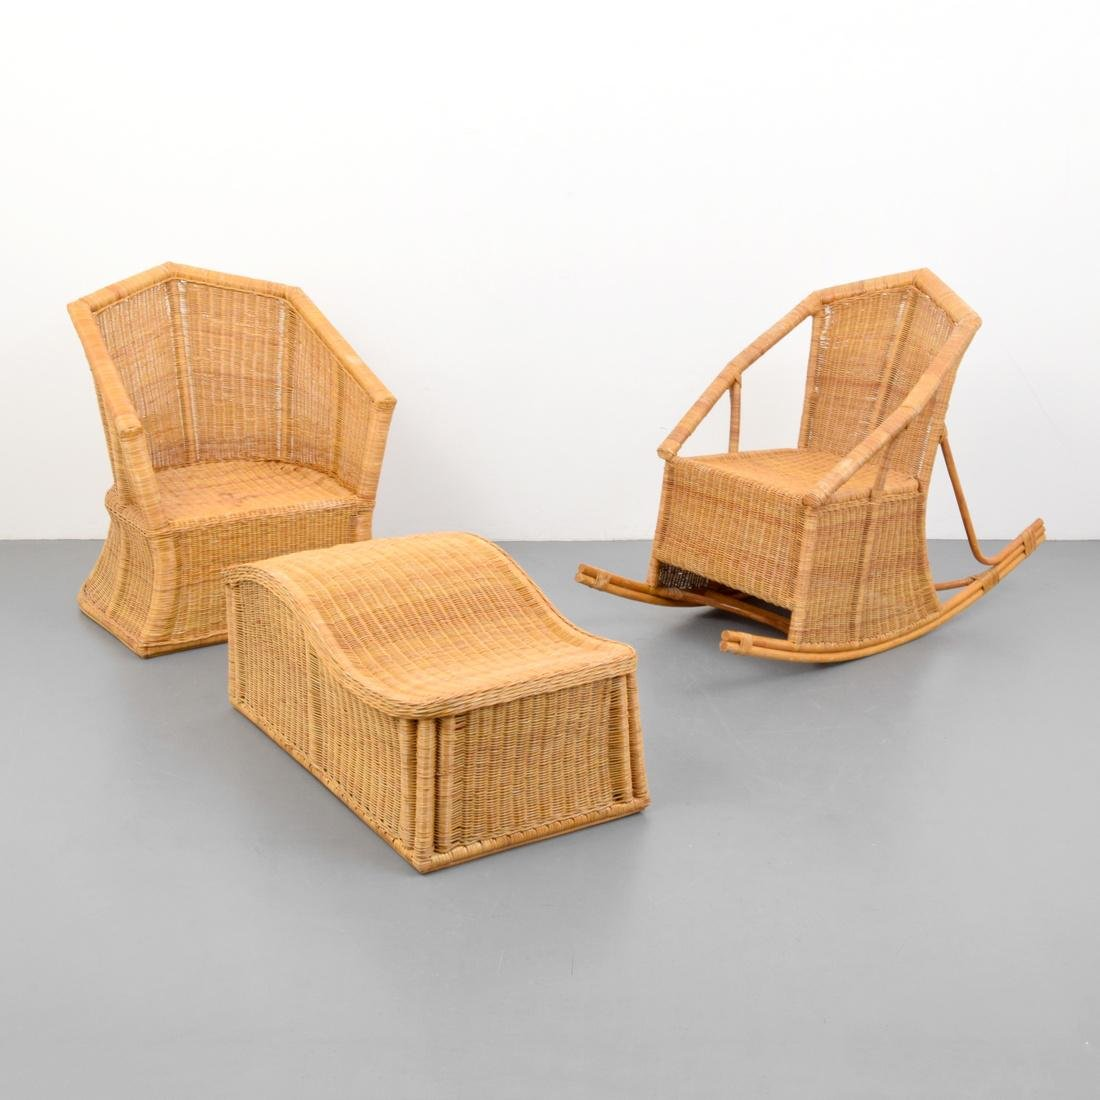 Pierre Chareau (after) Seating, 3 Piece Set